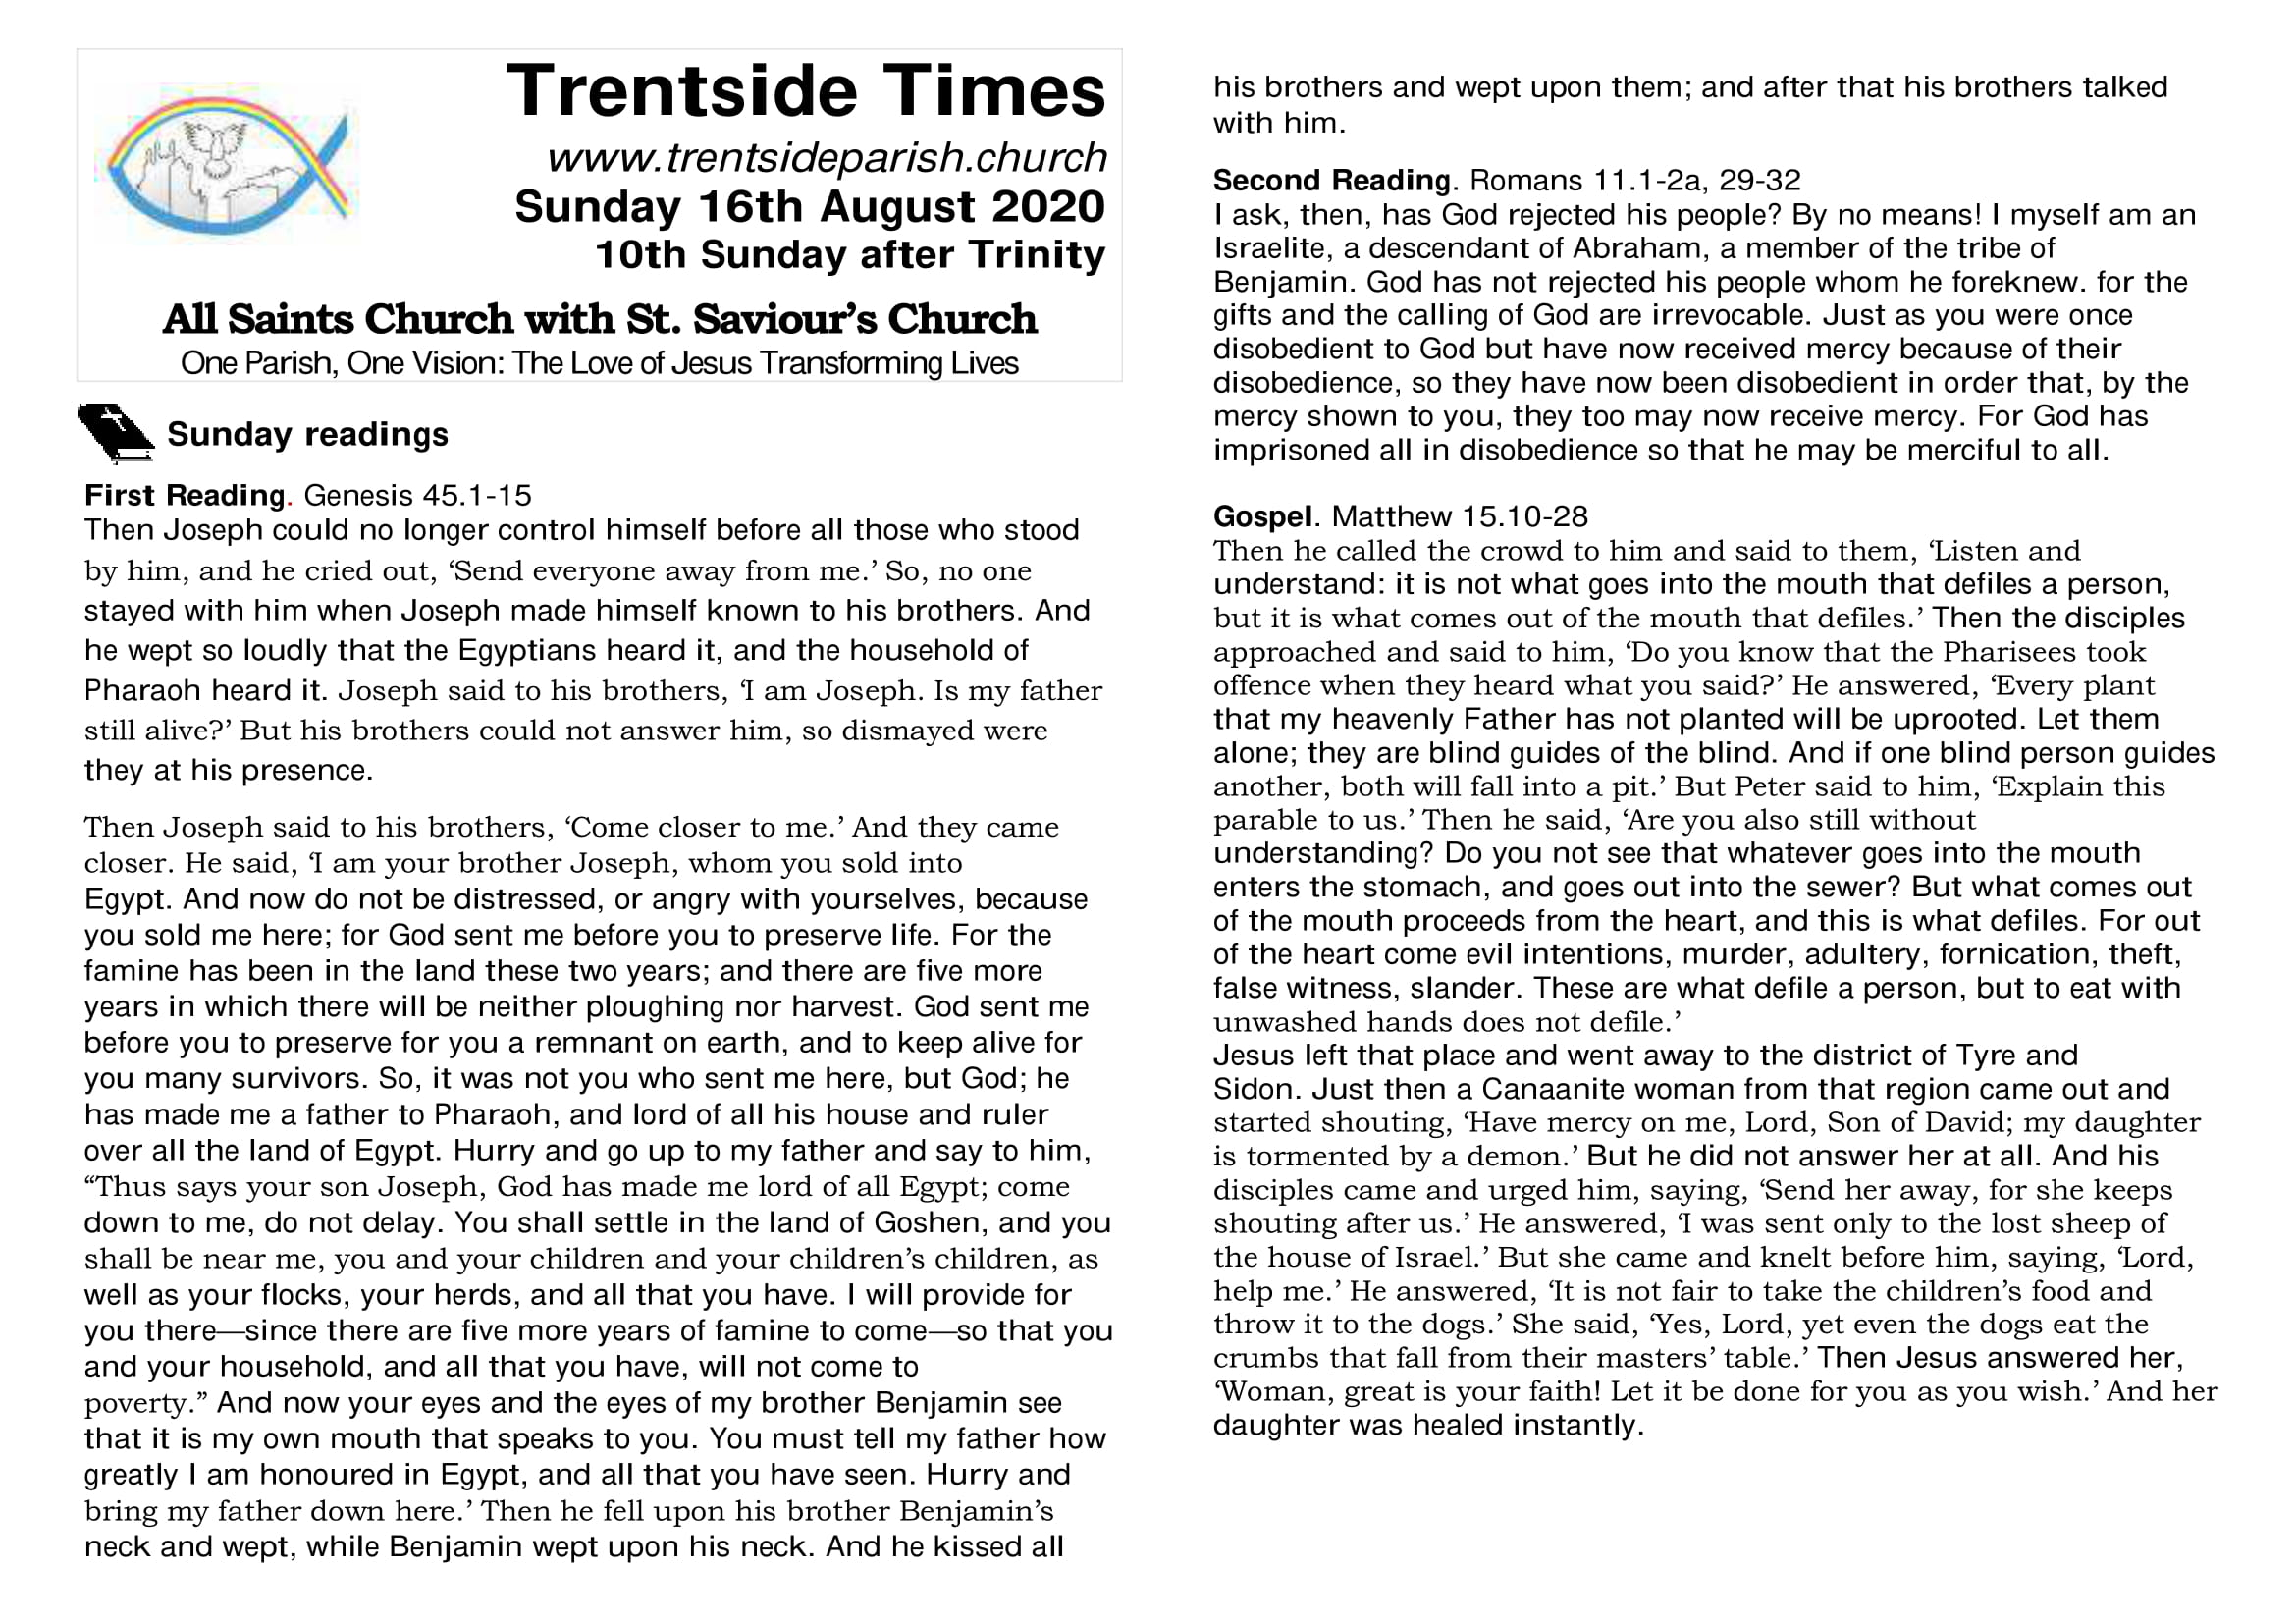 16th August. Trentside notices-page 1